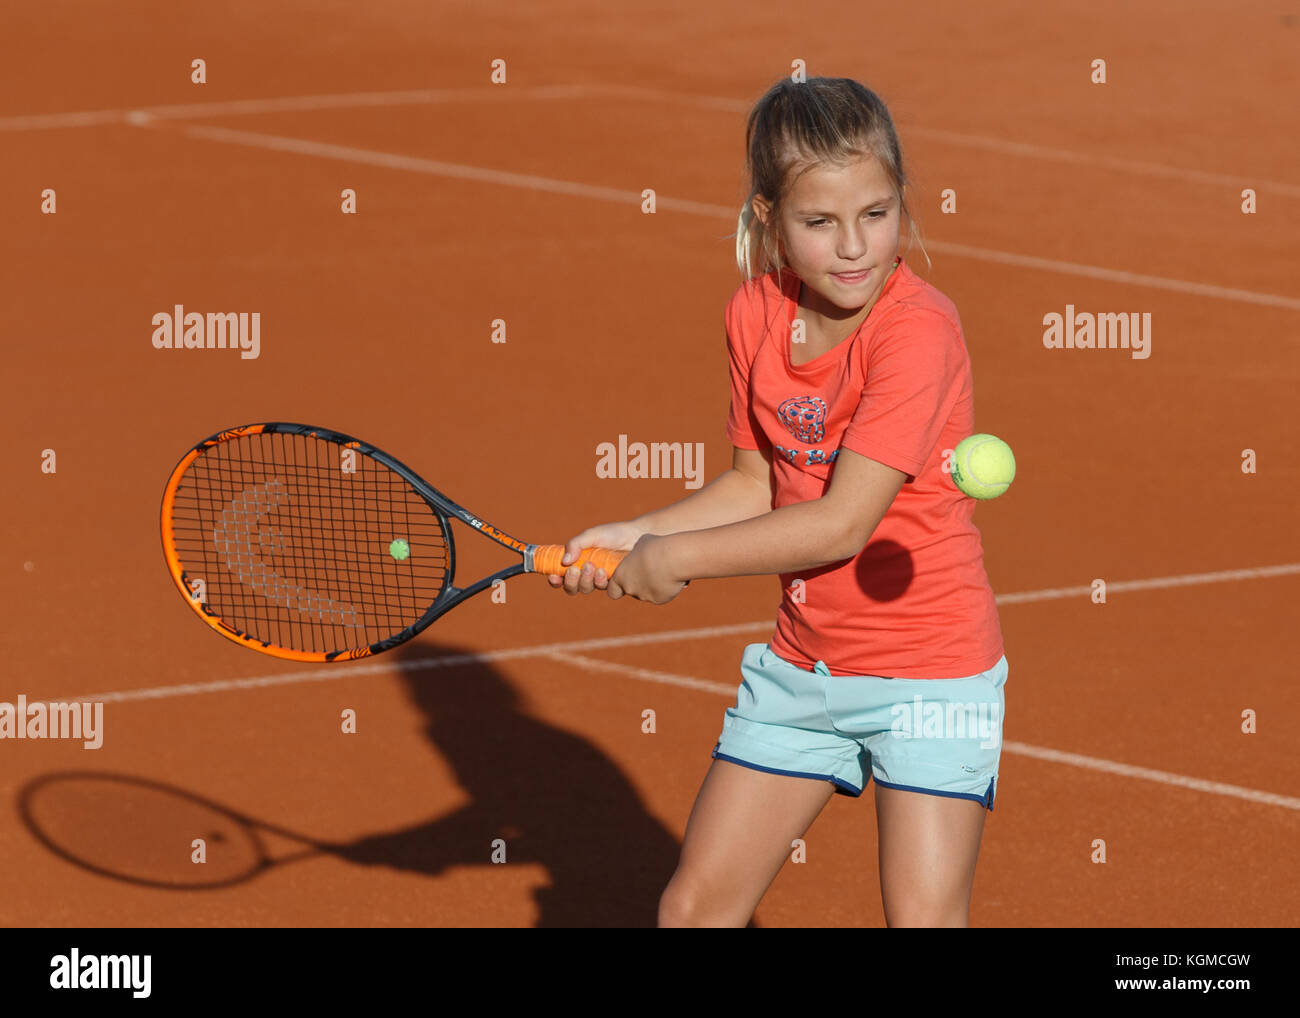 Jeune fille (8)0 jouer au tennis Photo Stock